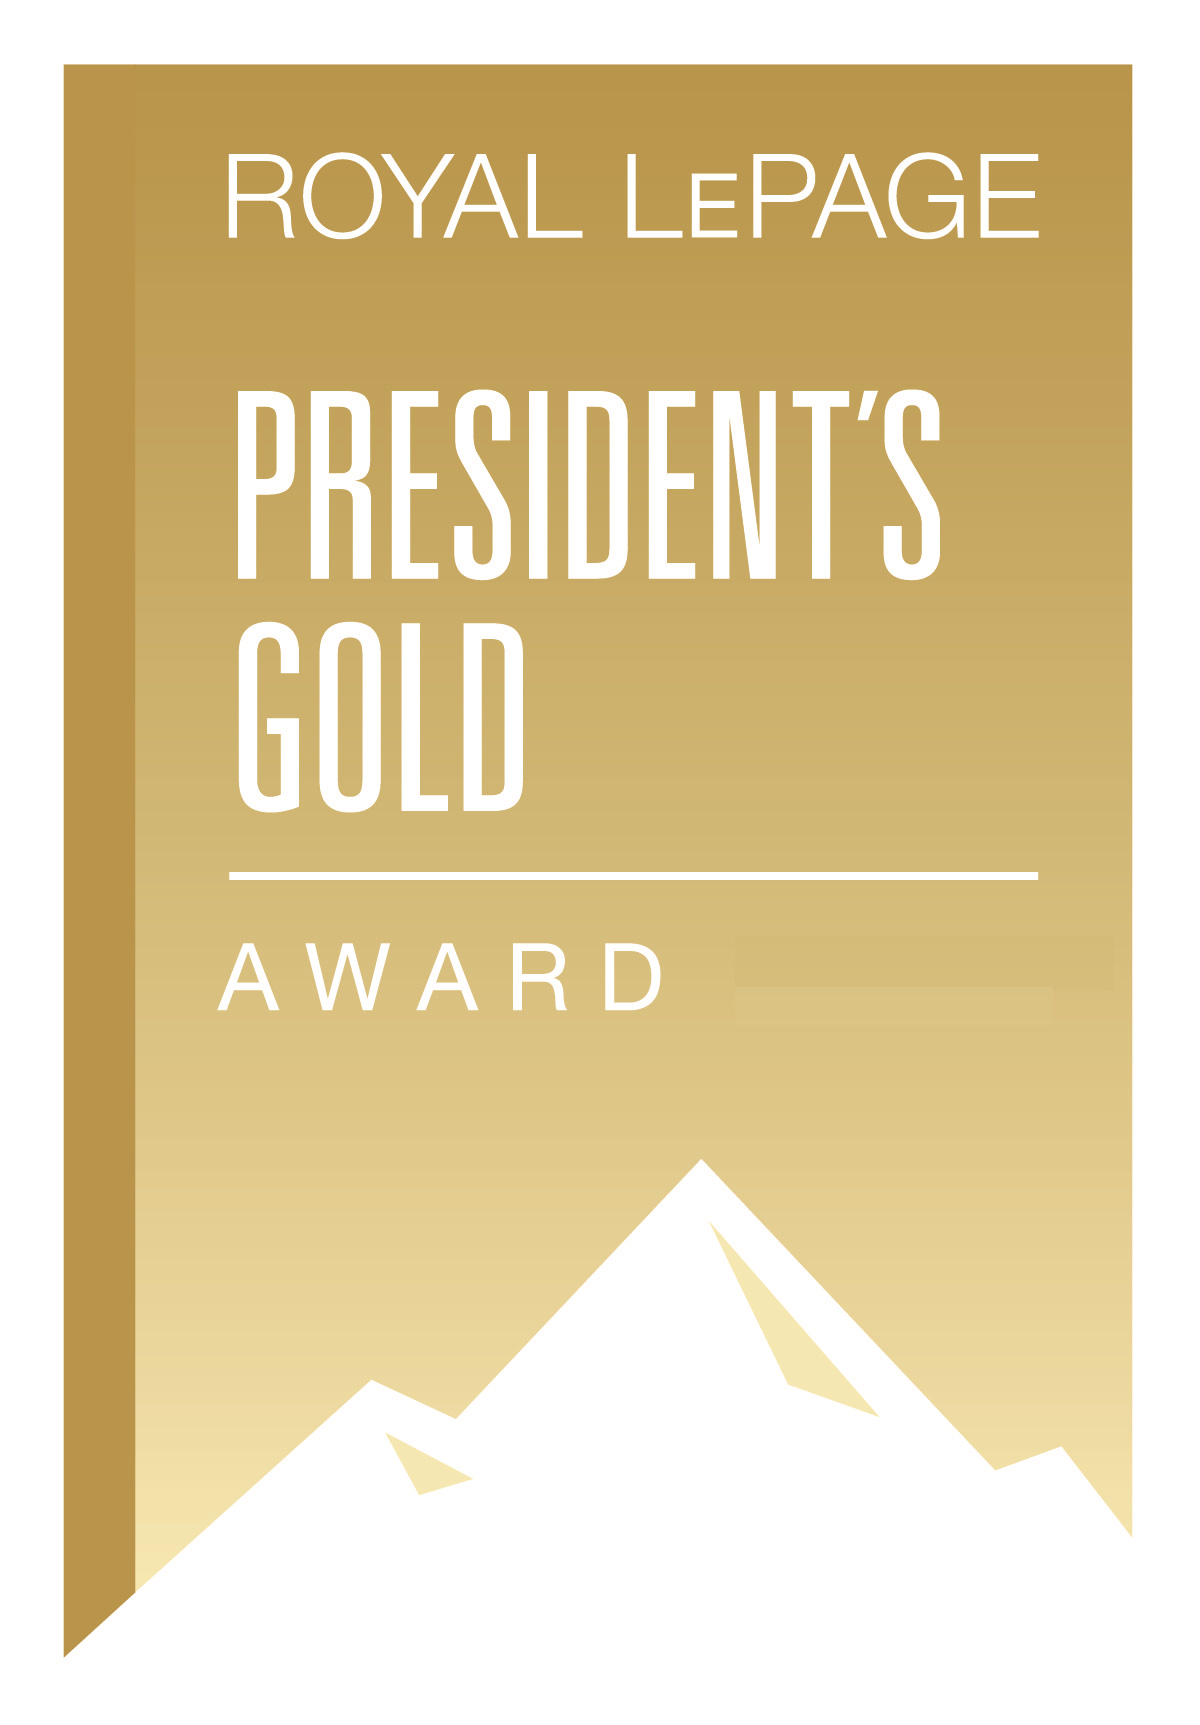 Royal LePage President's Gold Award